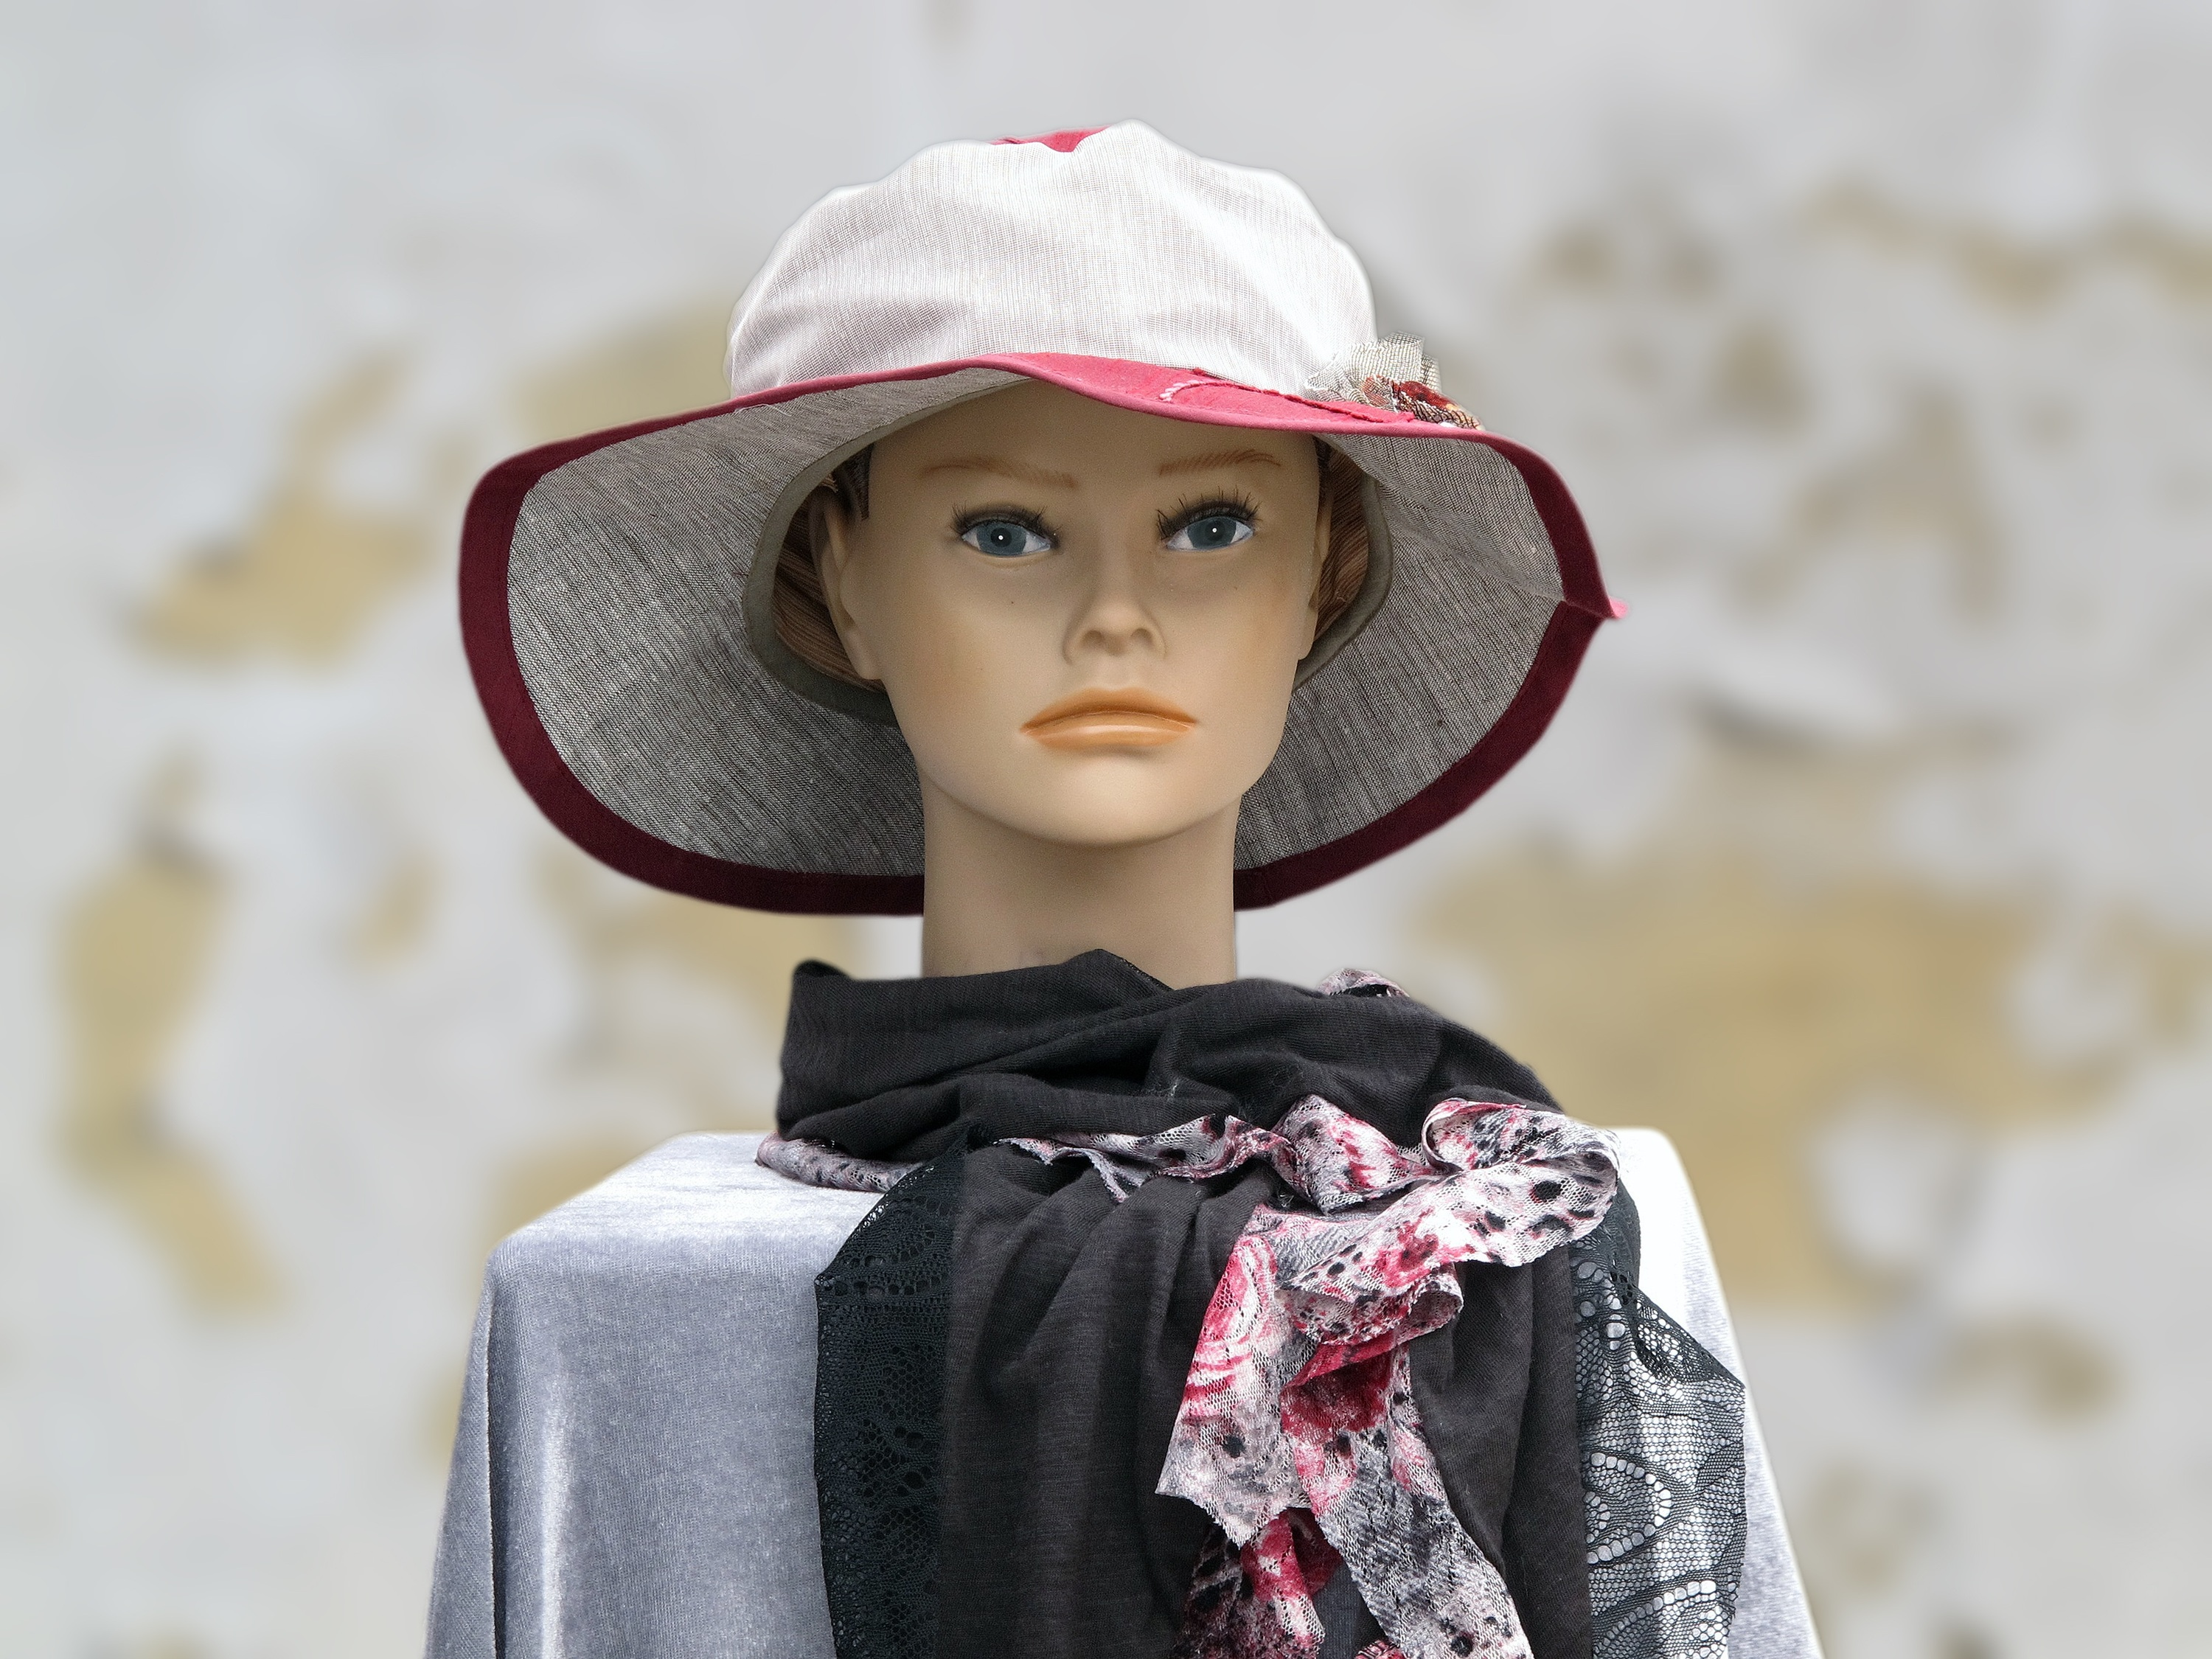 Generic mannequin with hat